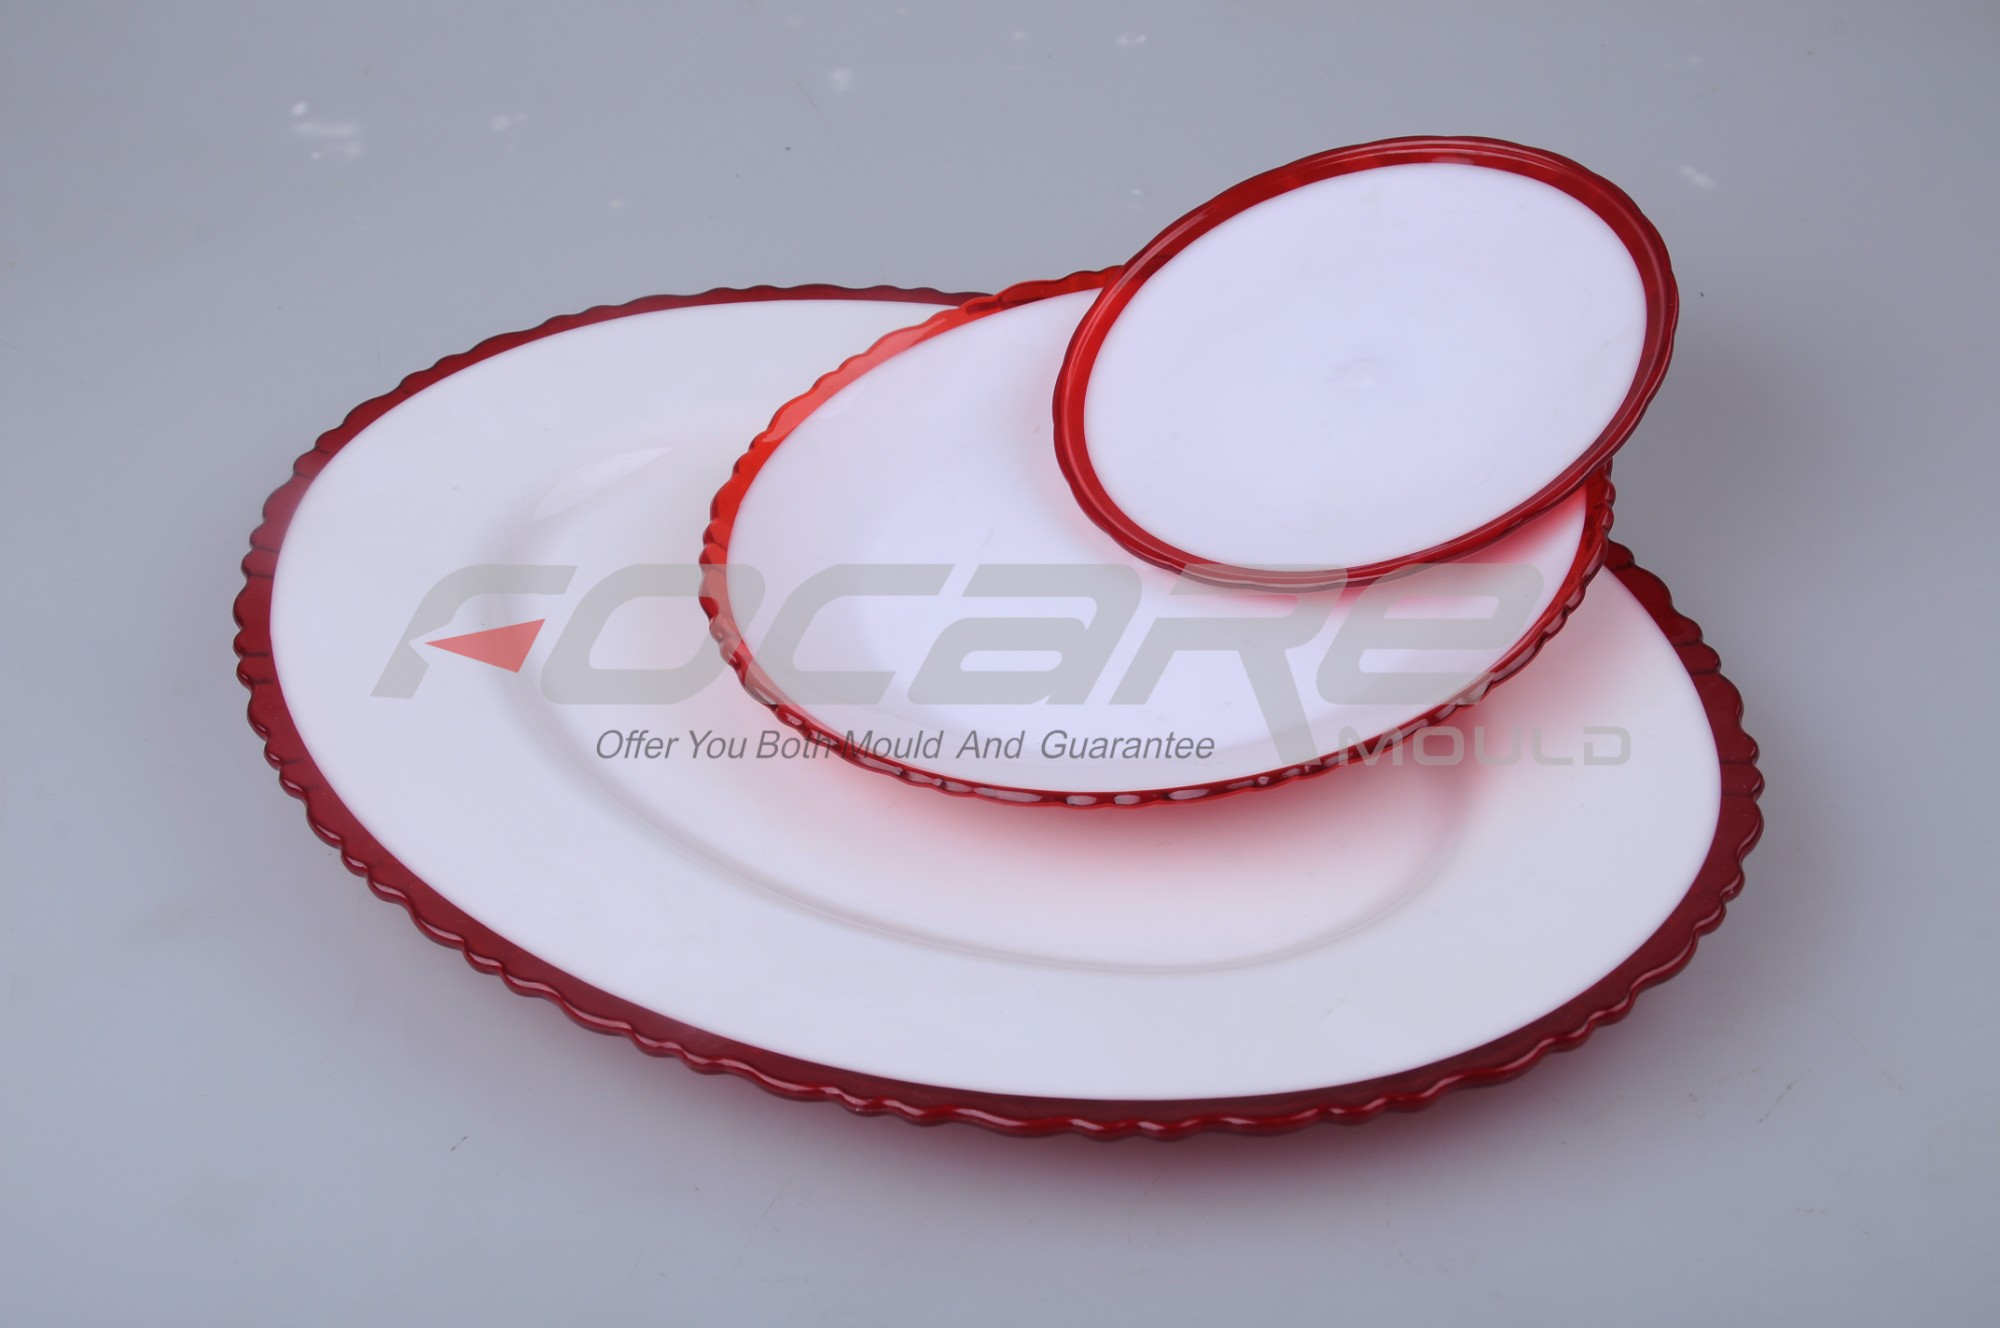 High quality Kitchenware Molds Quotes,China Kitchenware Molds Factory,Kitchenware Molds Purchasing